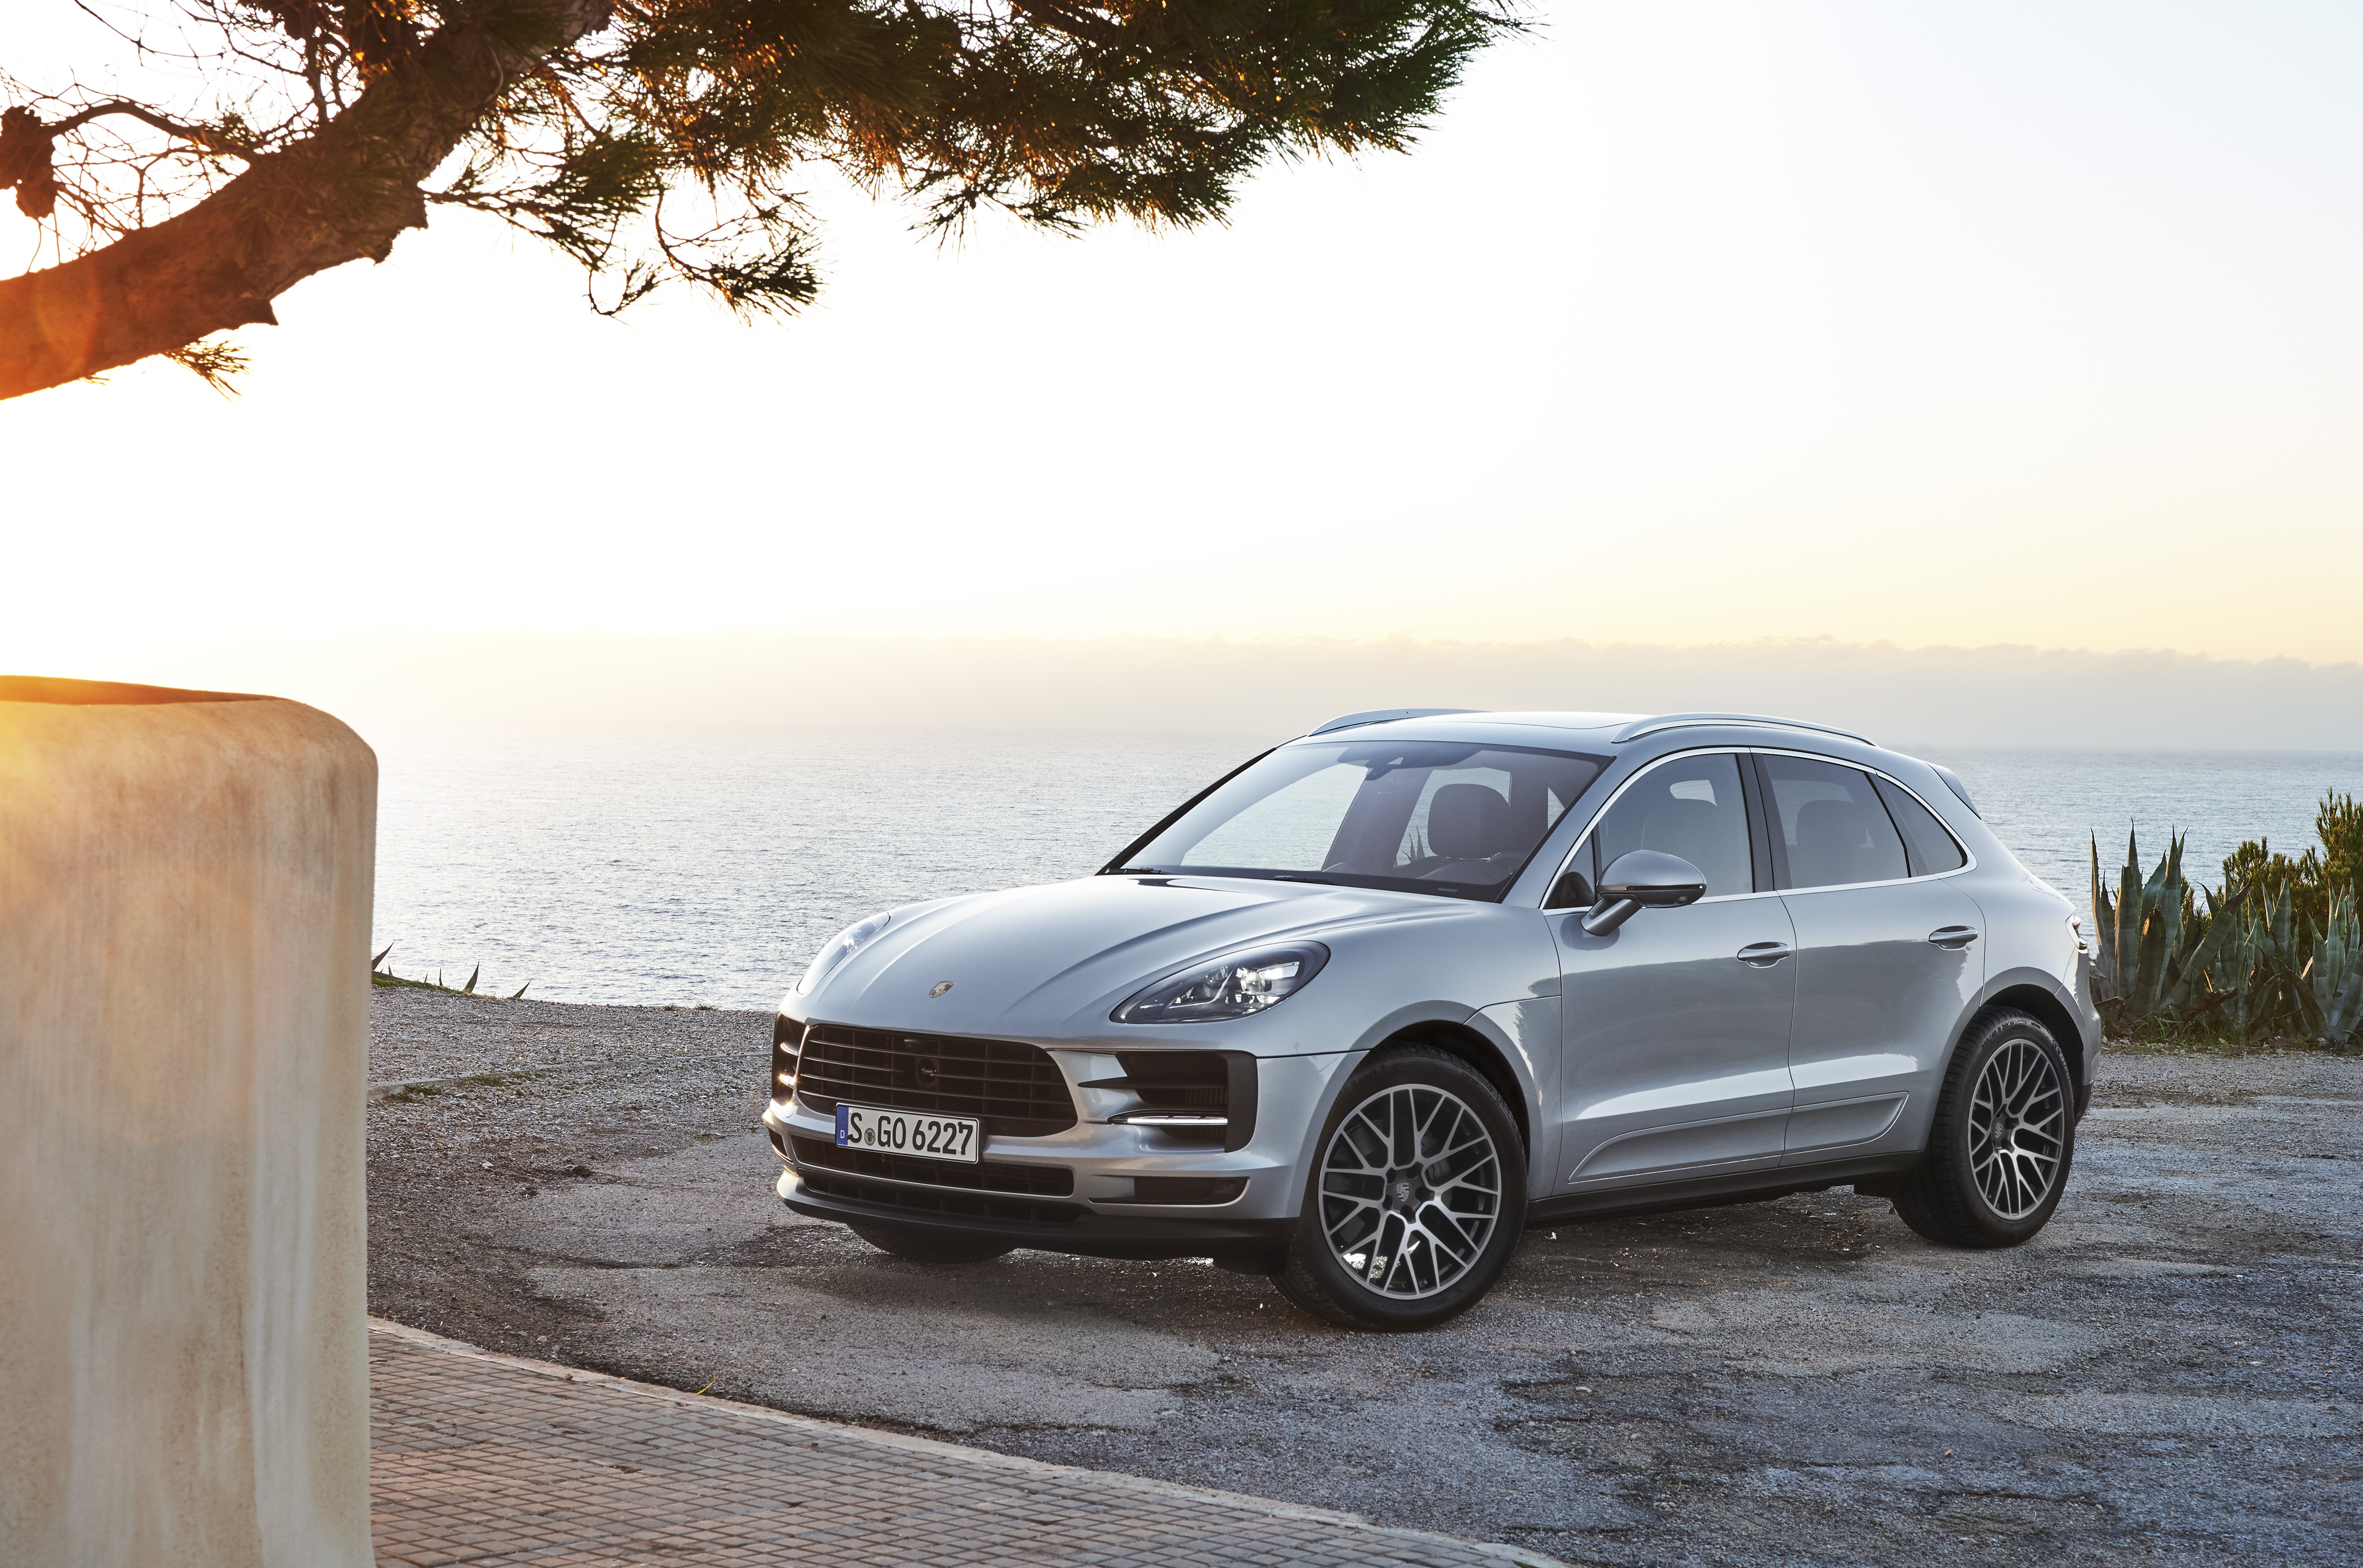 2020 Porsche Macan S, GTS, Interior, Hybrid >> 2020 Porsche Macan Changes For S Turbo Gts And Gt3 Models